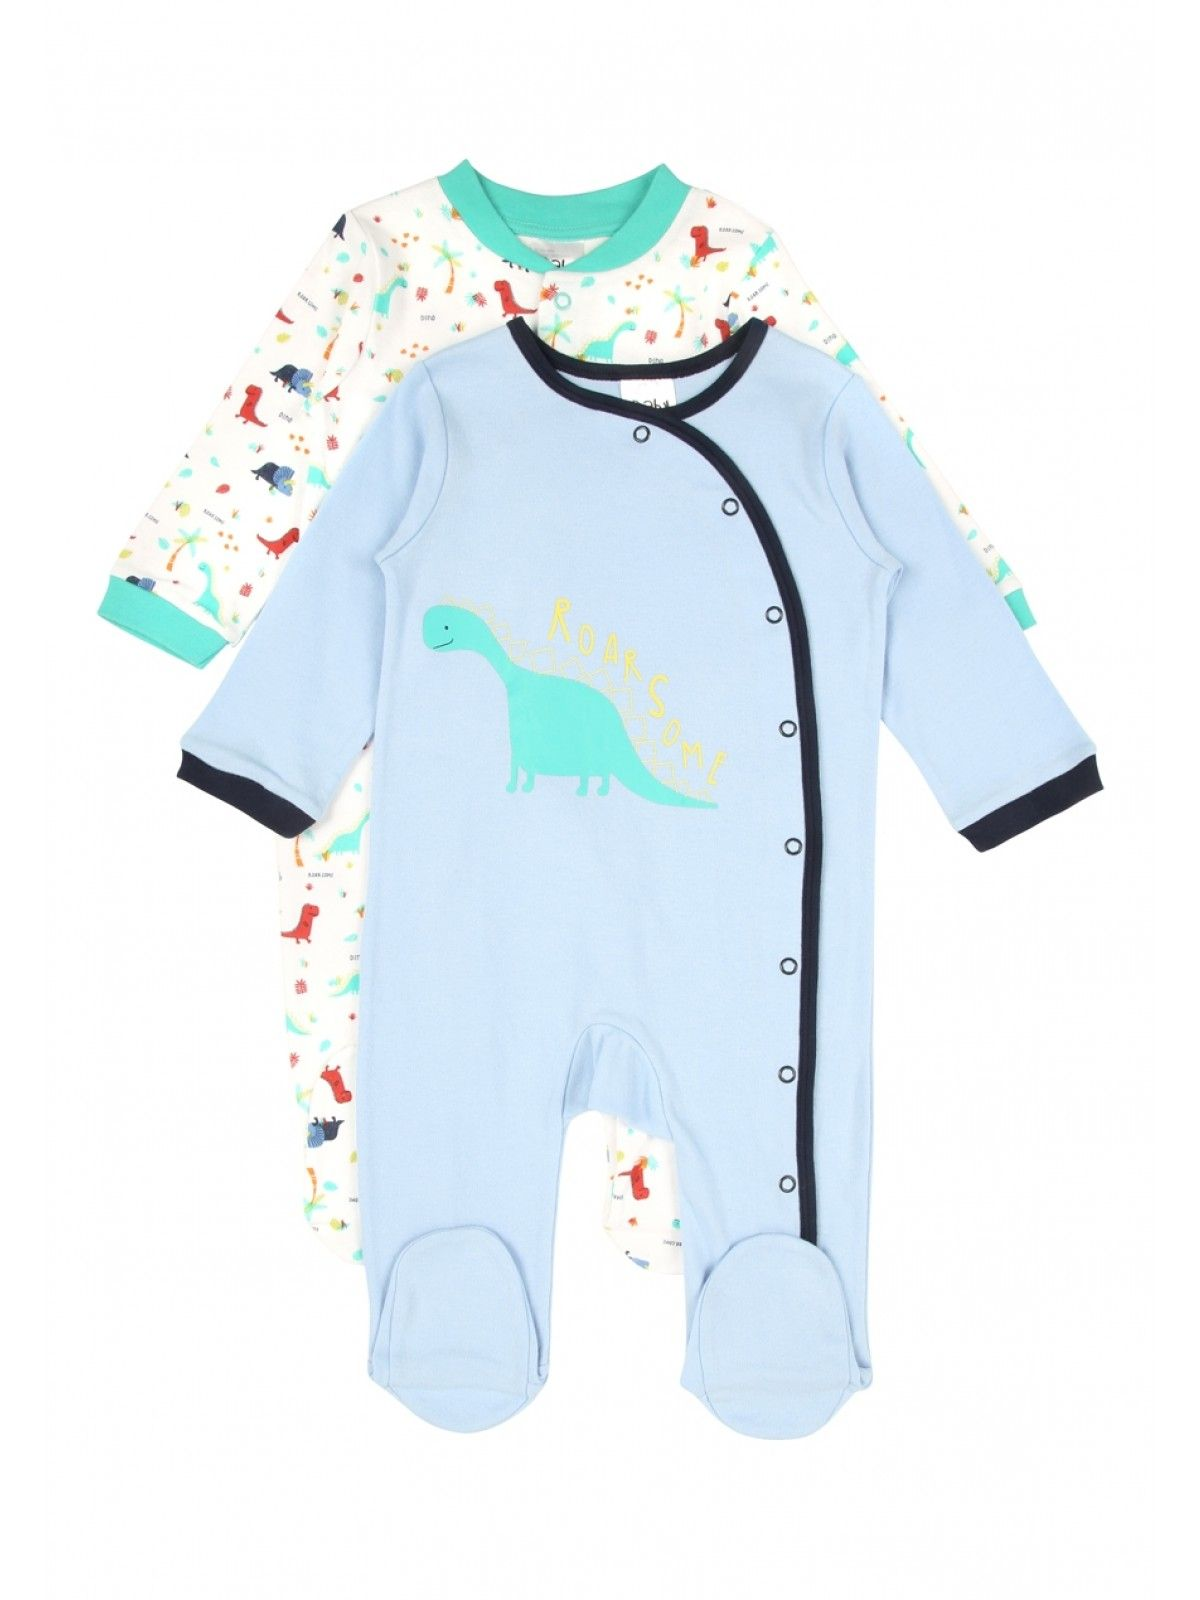 Baby Boys 2 Pack Dinosaur Sleepsuits See more at